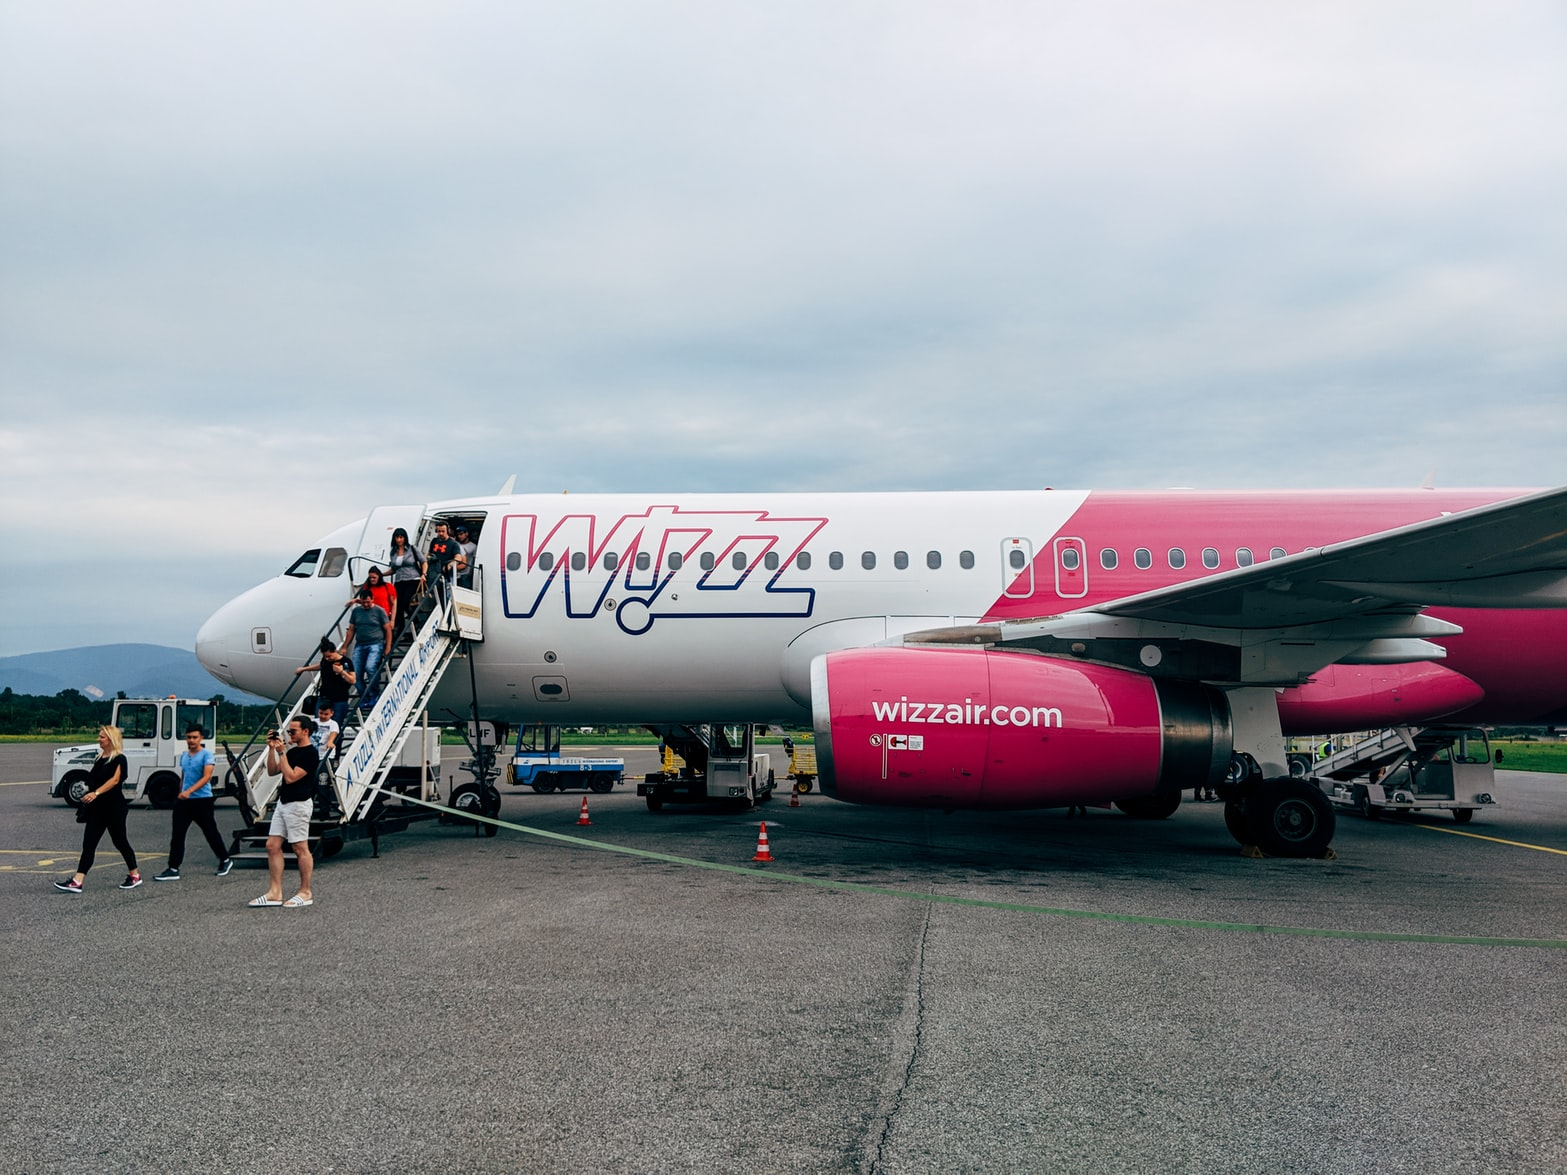 Wizz Air Updates Travel Insurance Offer With Covid Coverage